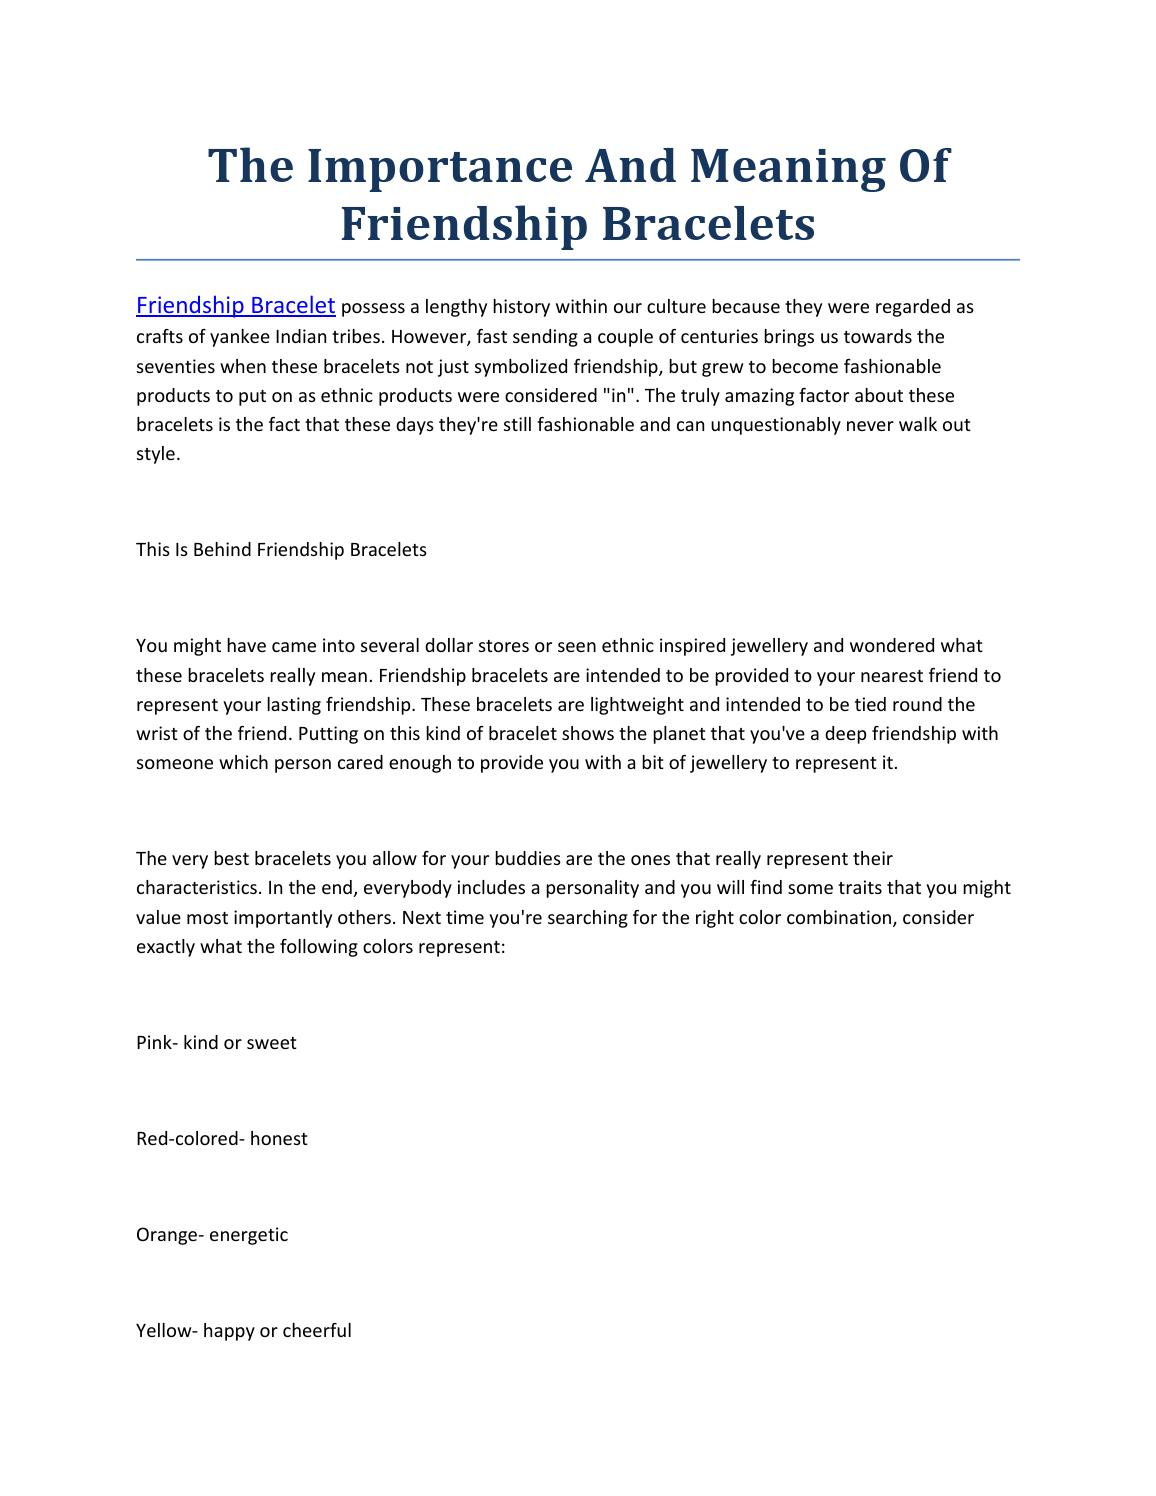 The Importance And Meaning Of Friendship Bracelet By Frank Lan Issuu